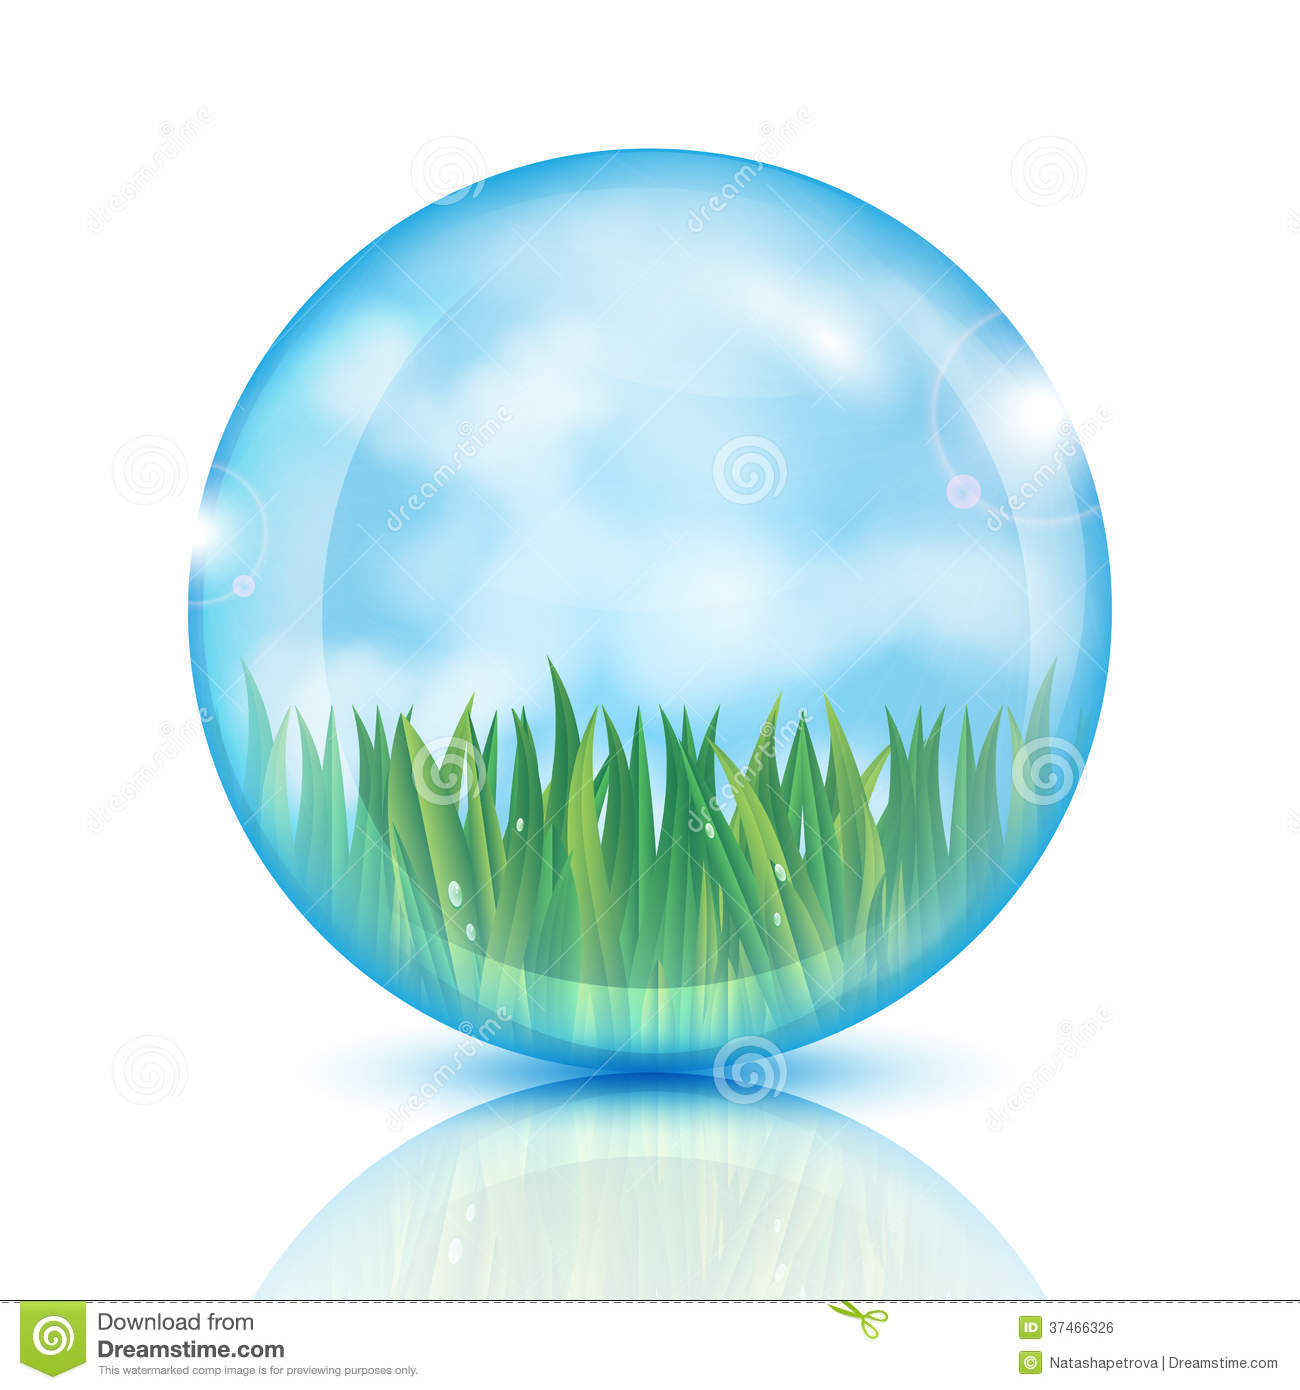 Ball with green grass and blue sky